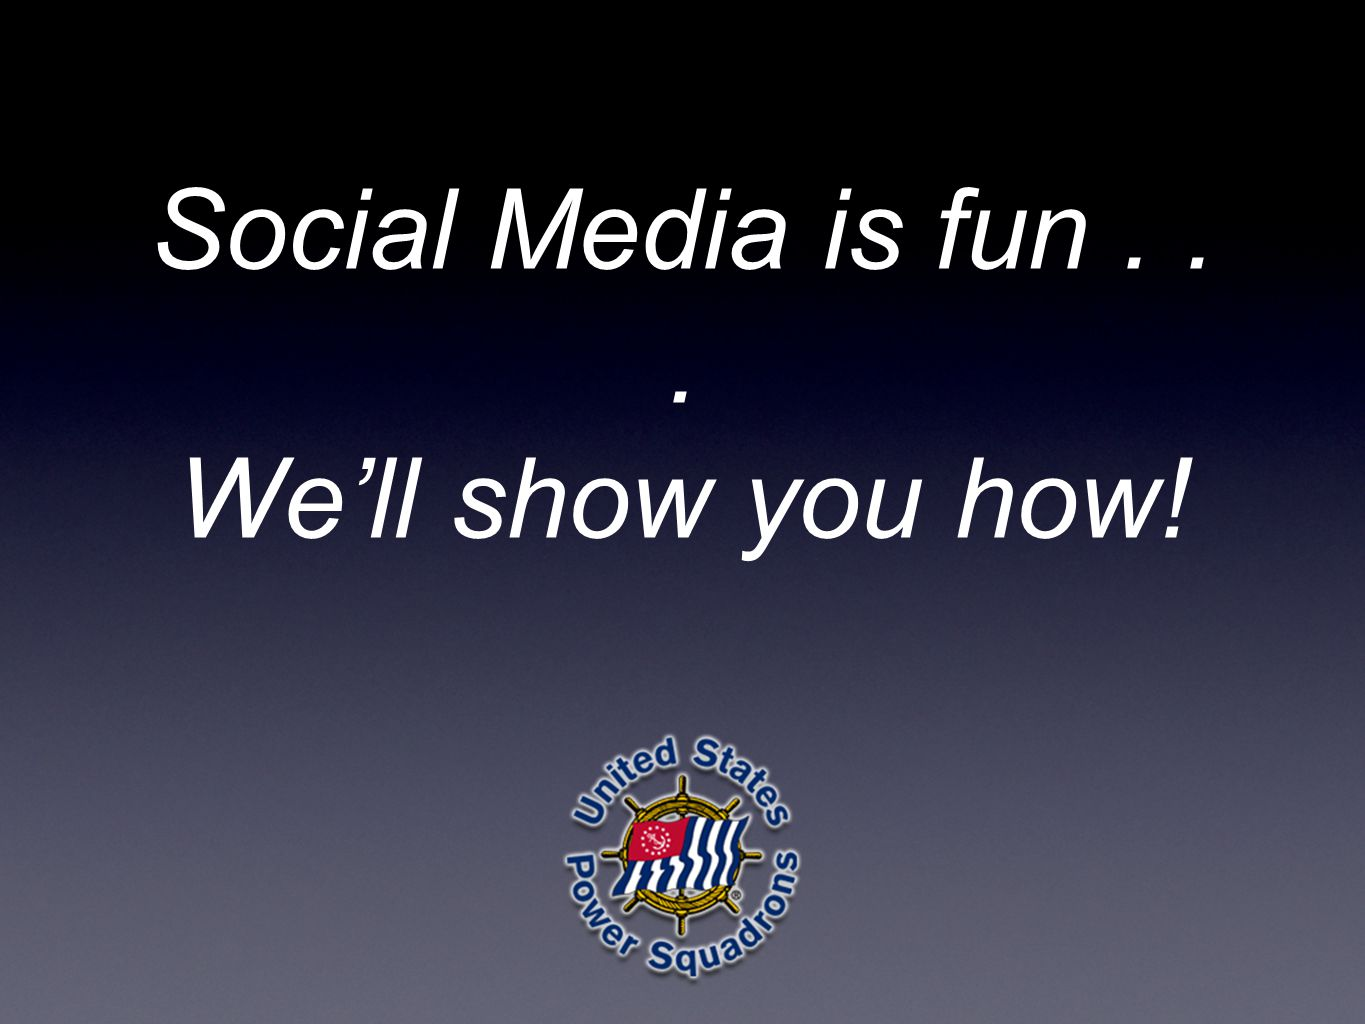 Social Media is fun... We'll show you how!